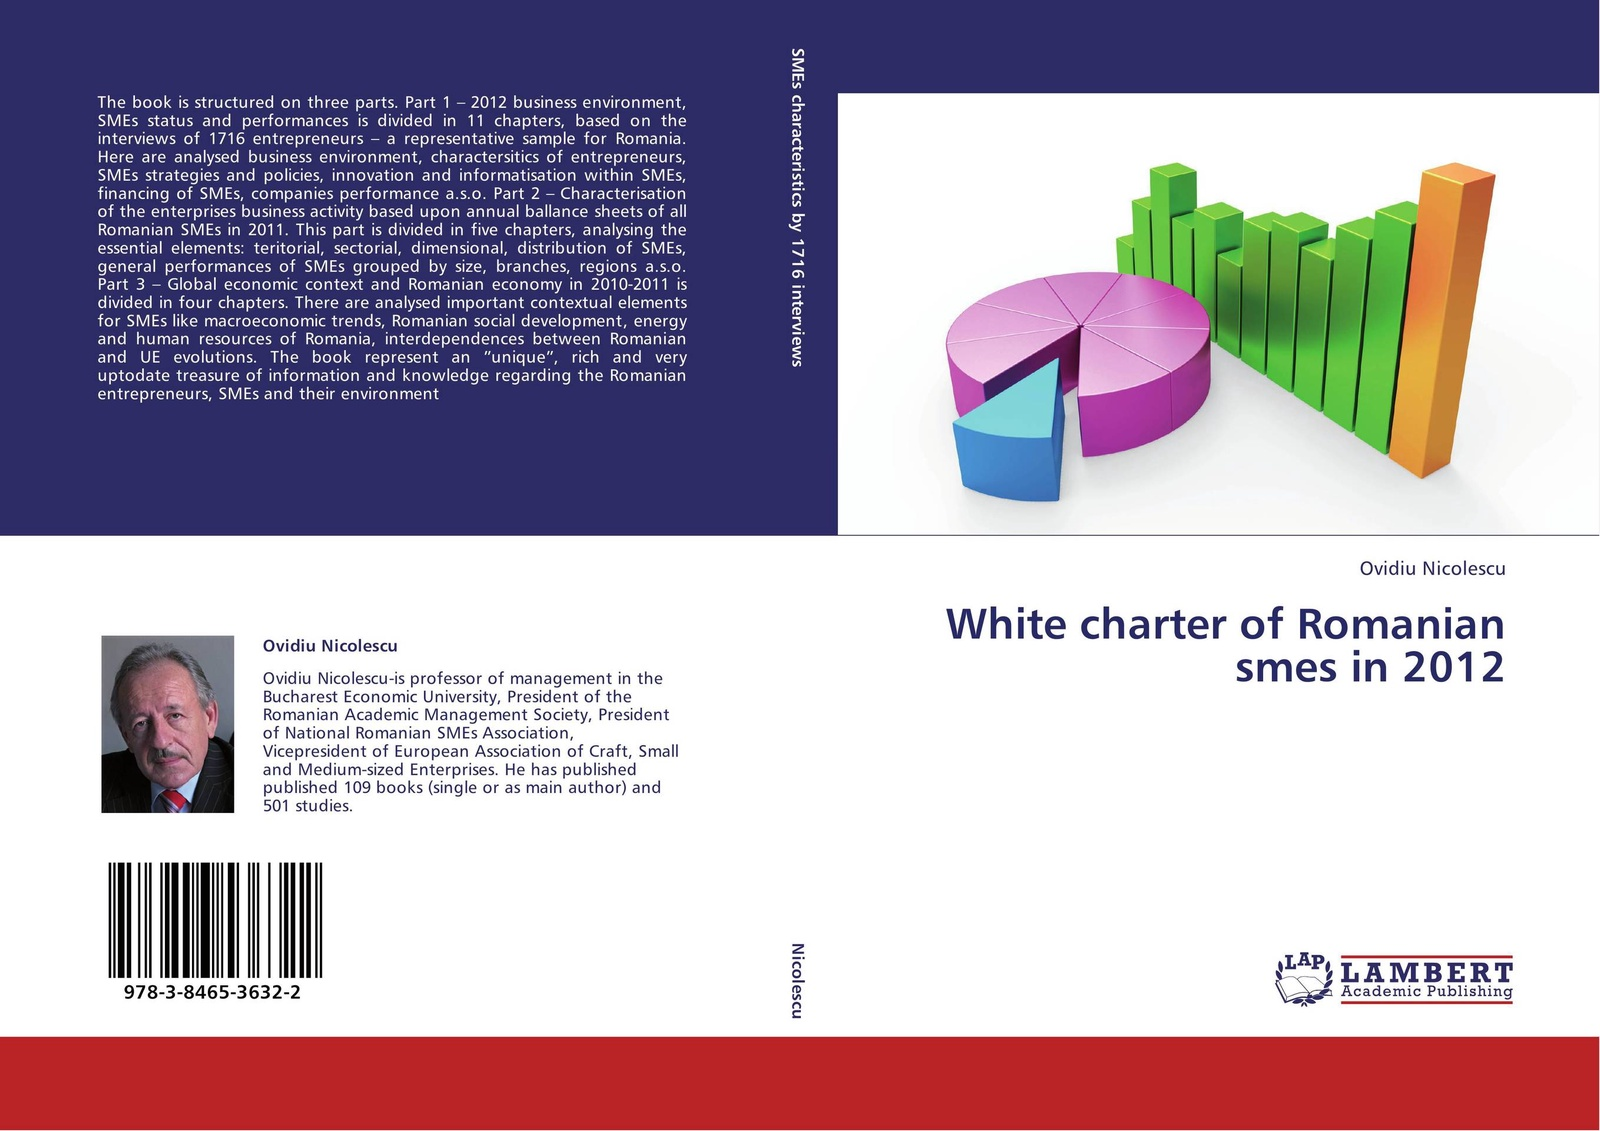 Ovidiu Nicolescu White charter of Romanian smes in 2012 lowellyne james sustainability footprints in smes strategy and case studies for entrepreneurs and small business